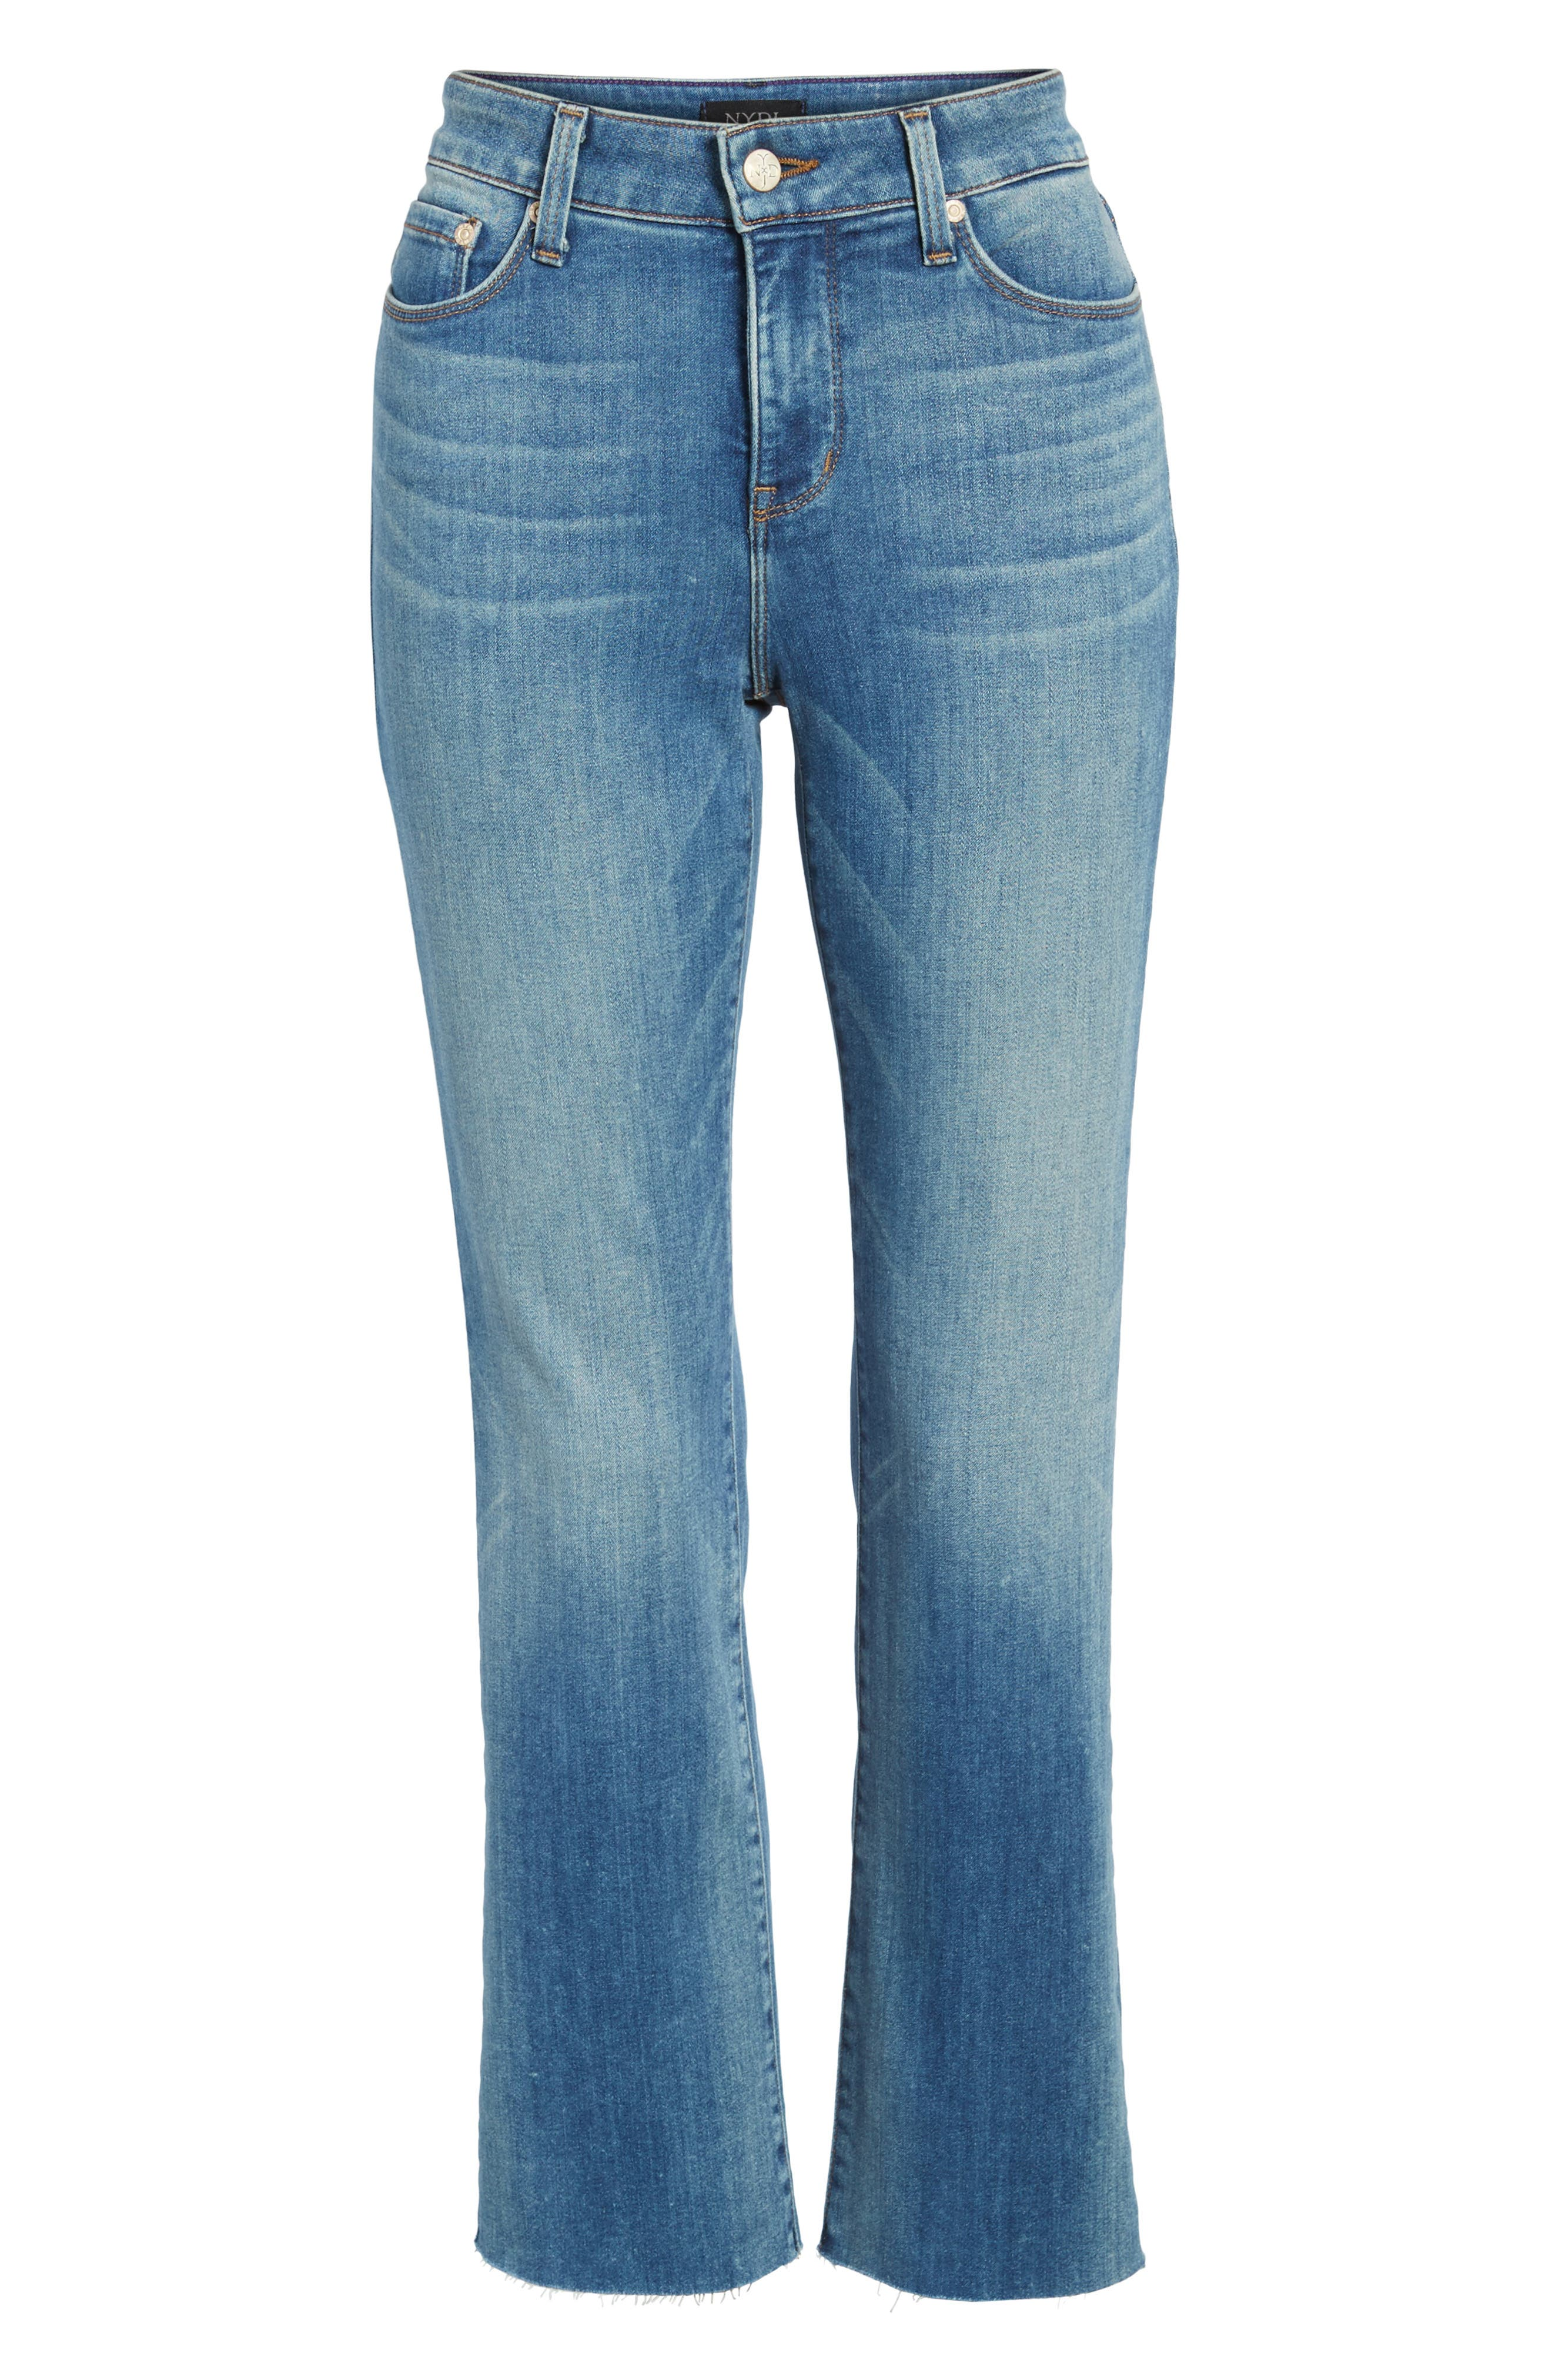 Marilyn Ankle Skinny Jeans,                             Alternate thumbnail 6, color,                             417